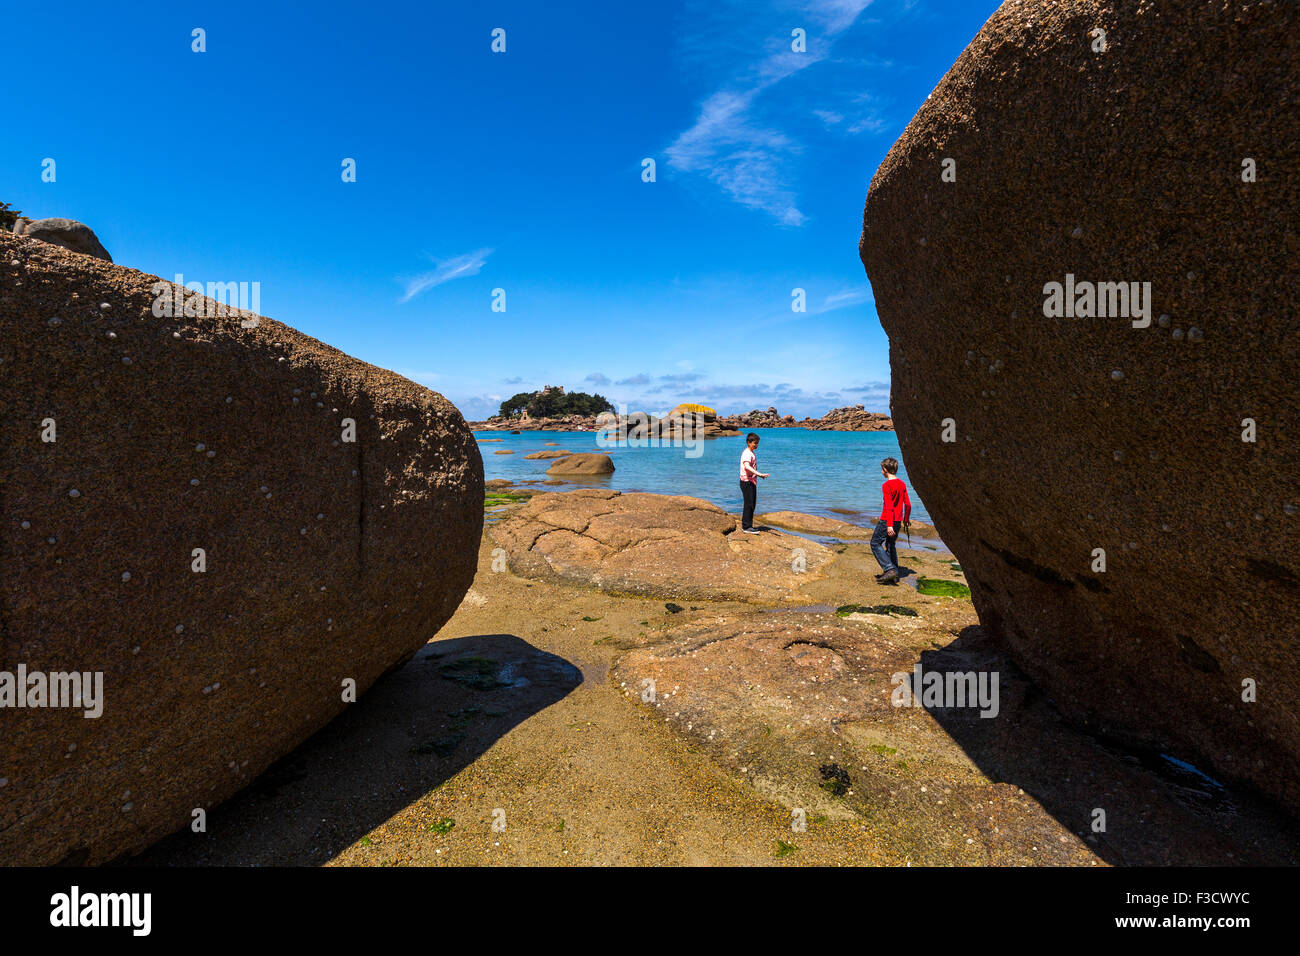 Giant rocks at the Cote granit rose pink granite coast Ploumanac´h Perros Guirec French Brittany France Europe - Stock Image